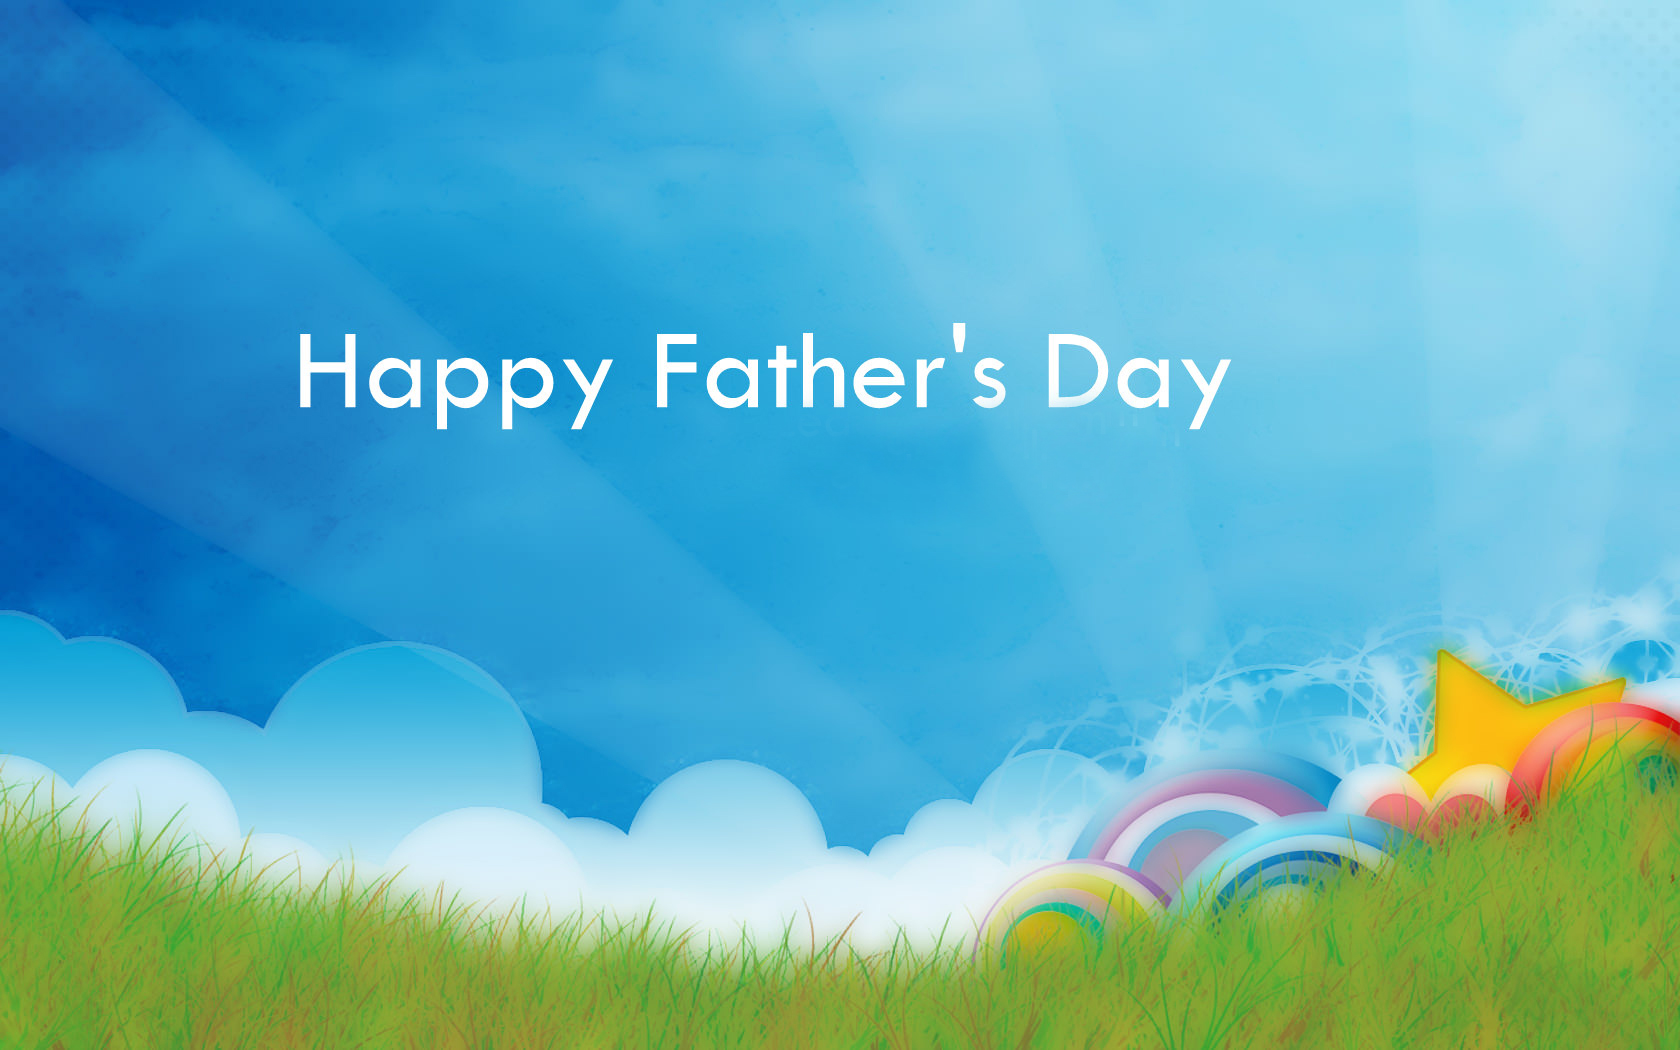 Happy Fathers Day Wallpapers For Desktop